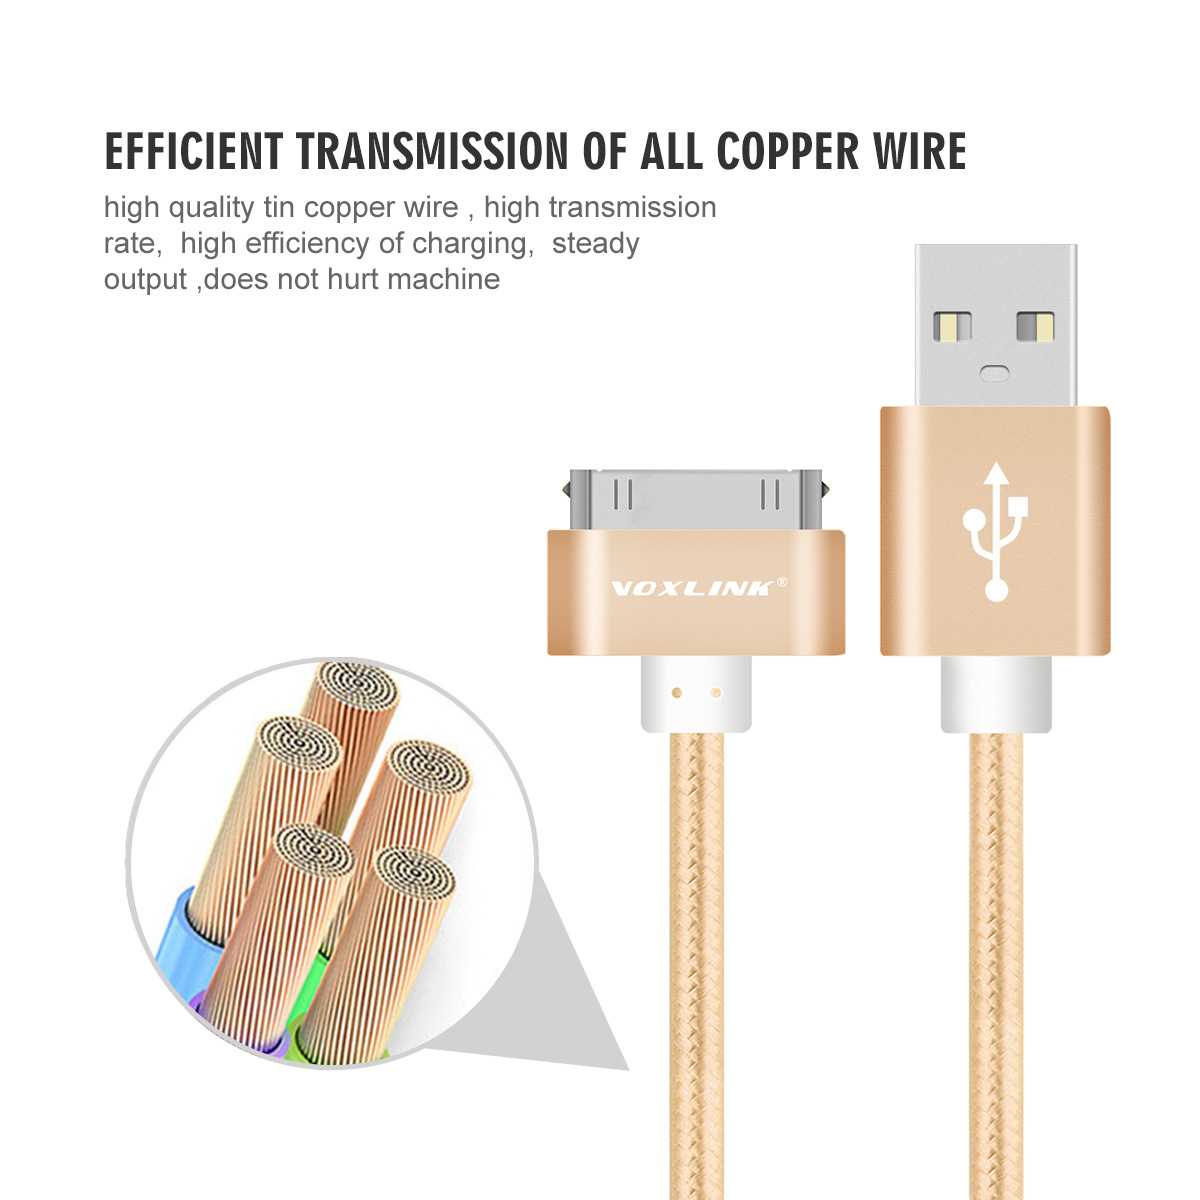 USB Charger Cable Braided Nylon Premium USB Data Sync Charging Cable for iphone 4s iPad 2 3 4 iPod silver 100cm 2